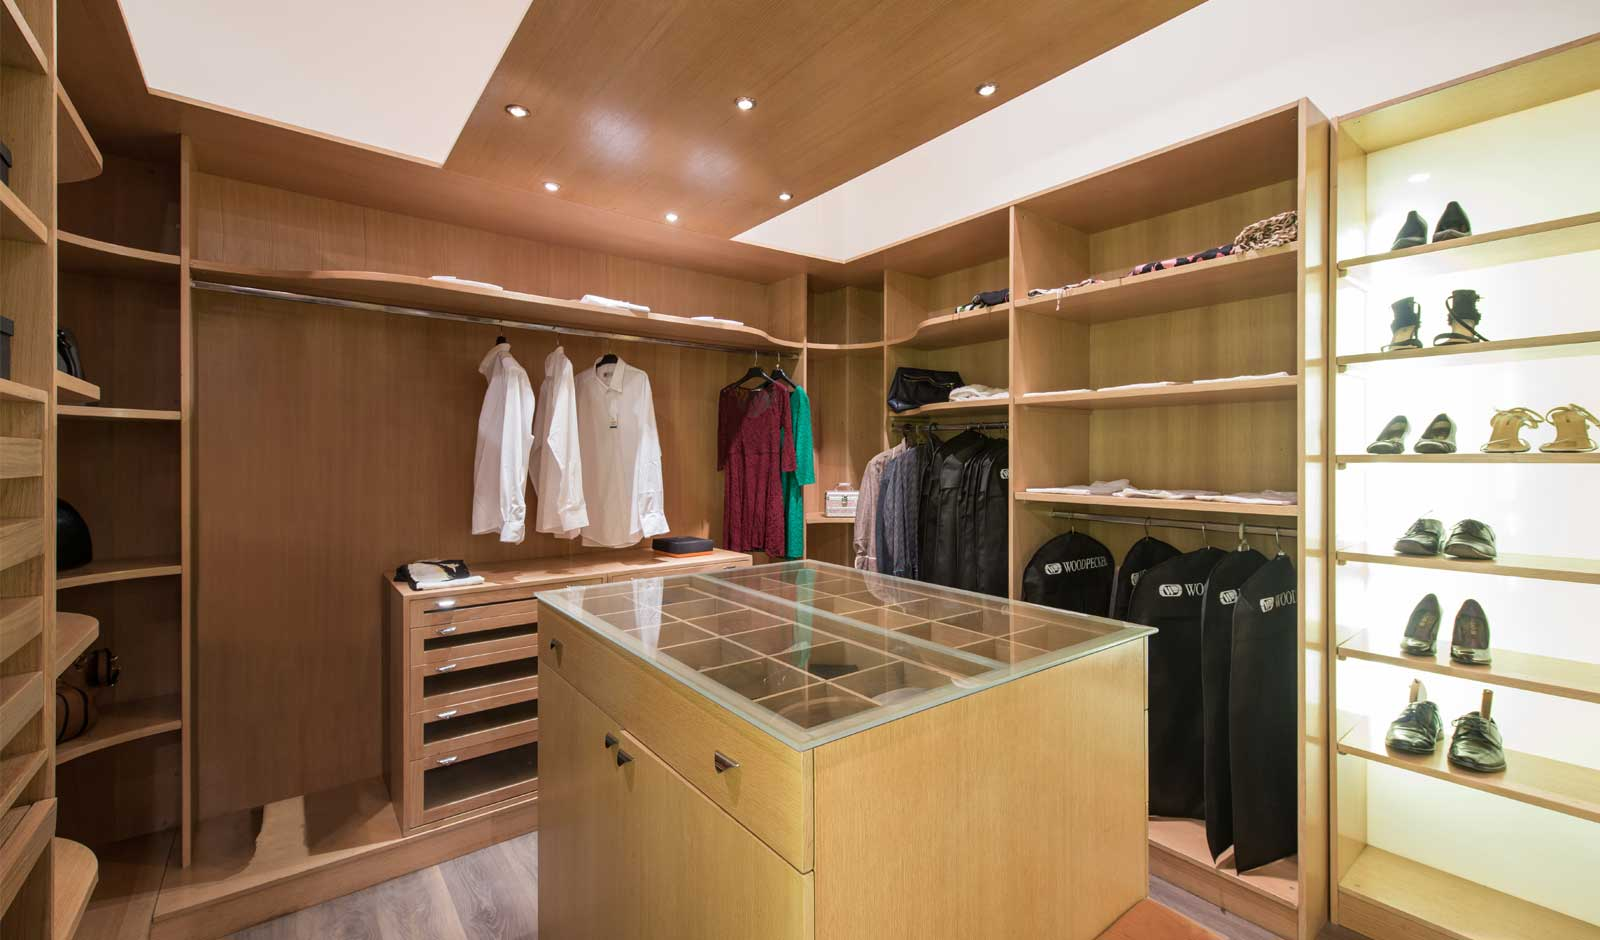 closet in suburbs space bucha ukraine kiev of walking modern house the pin